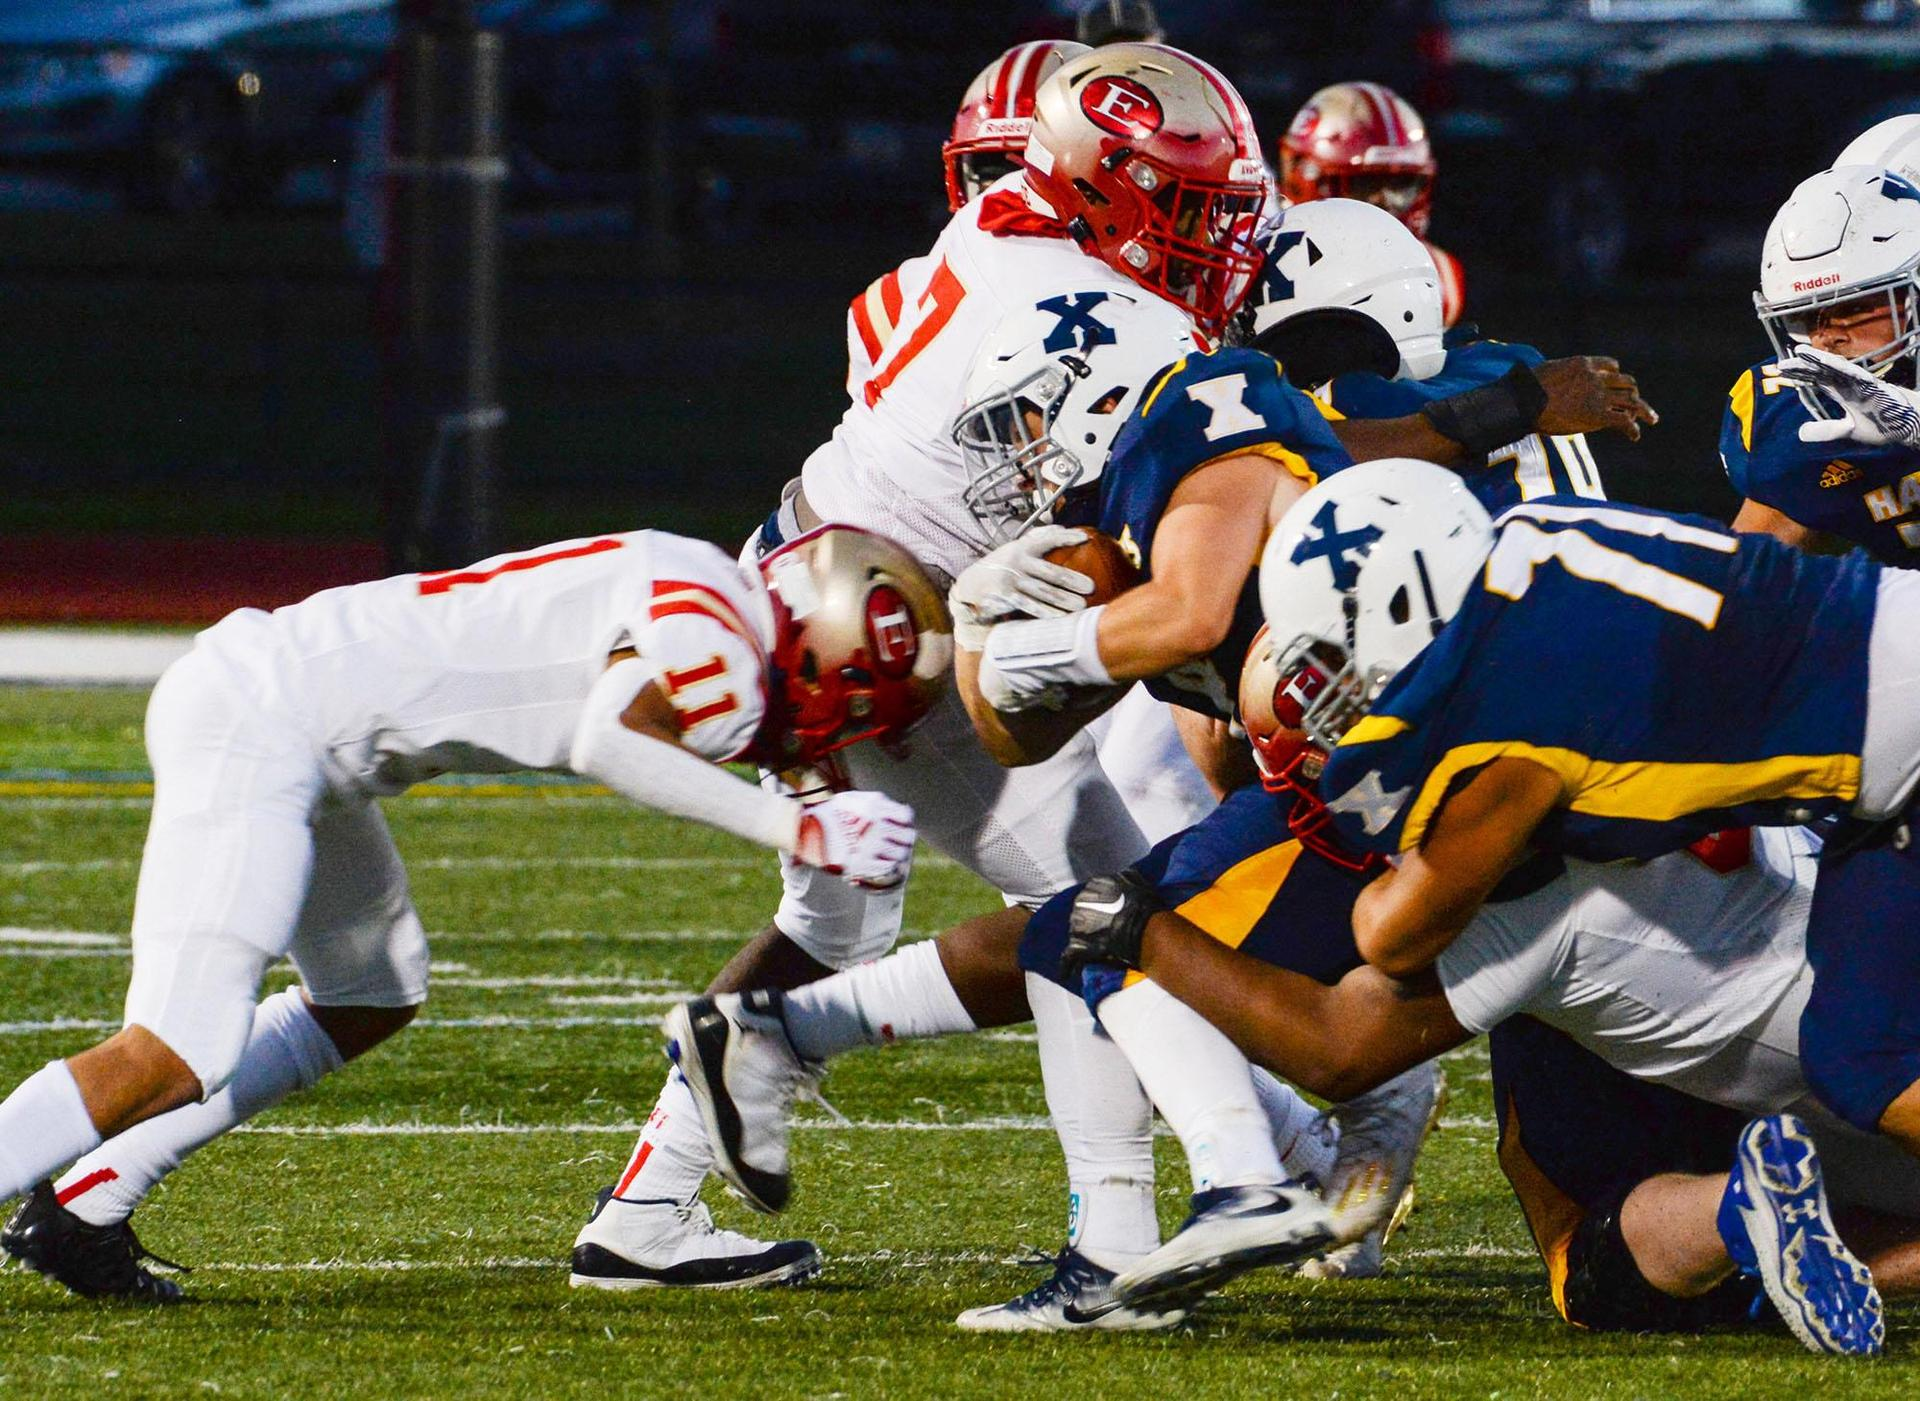 A EHS defender lowers his head and makes a tackle